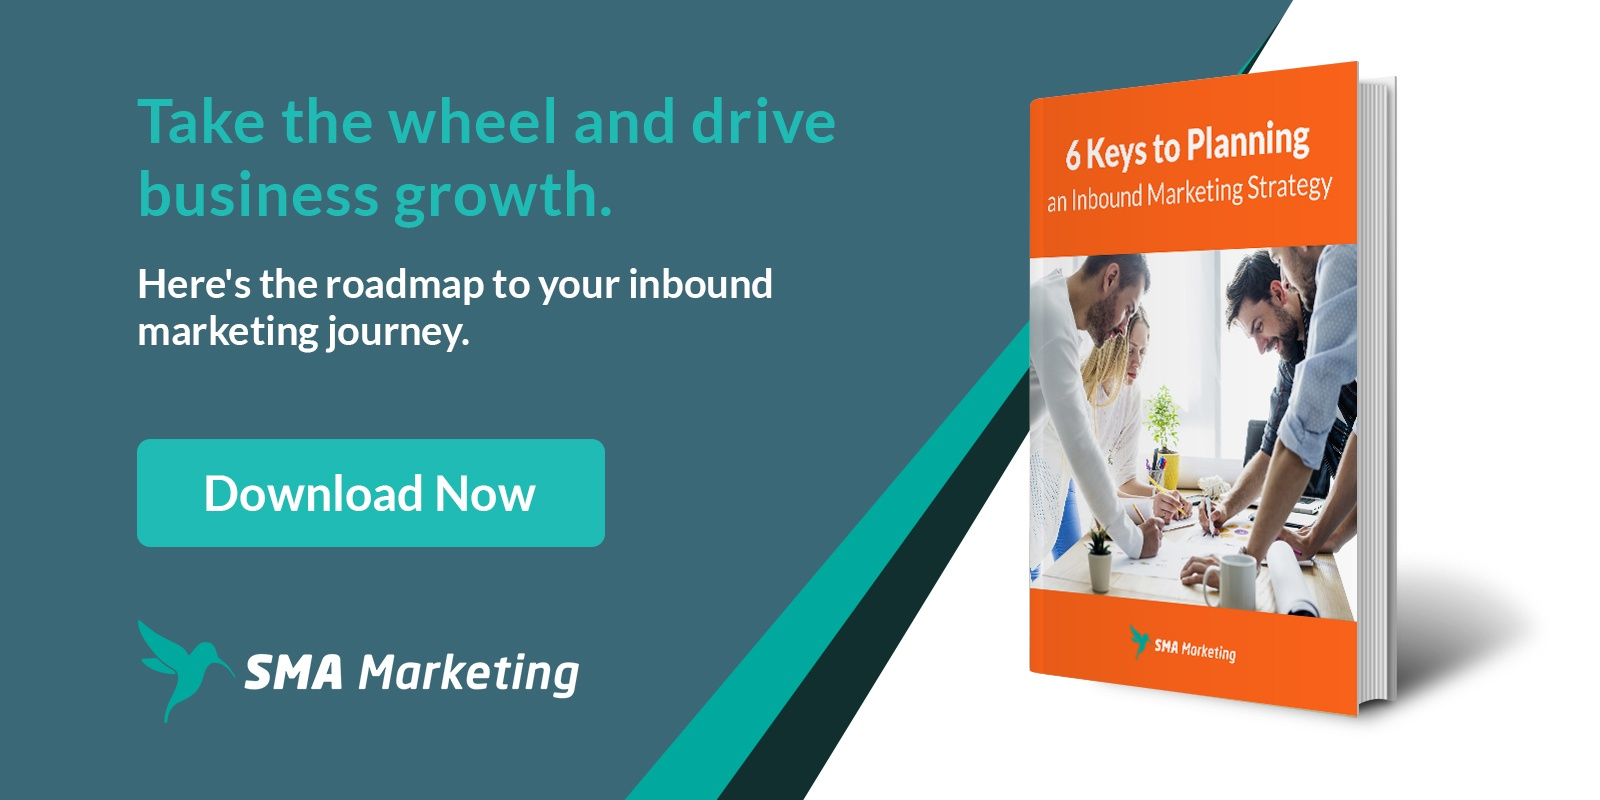 Keys to planning an inbound marketing strategy